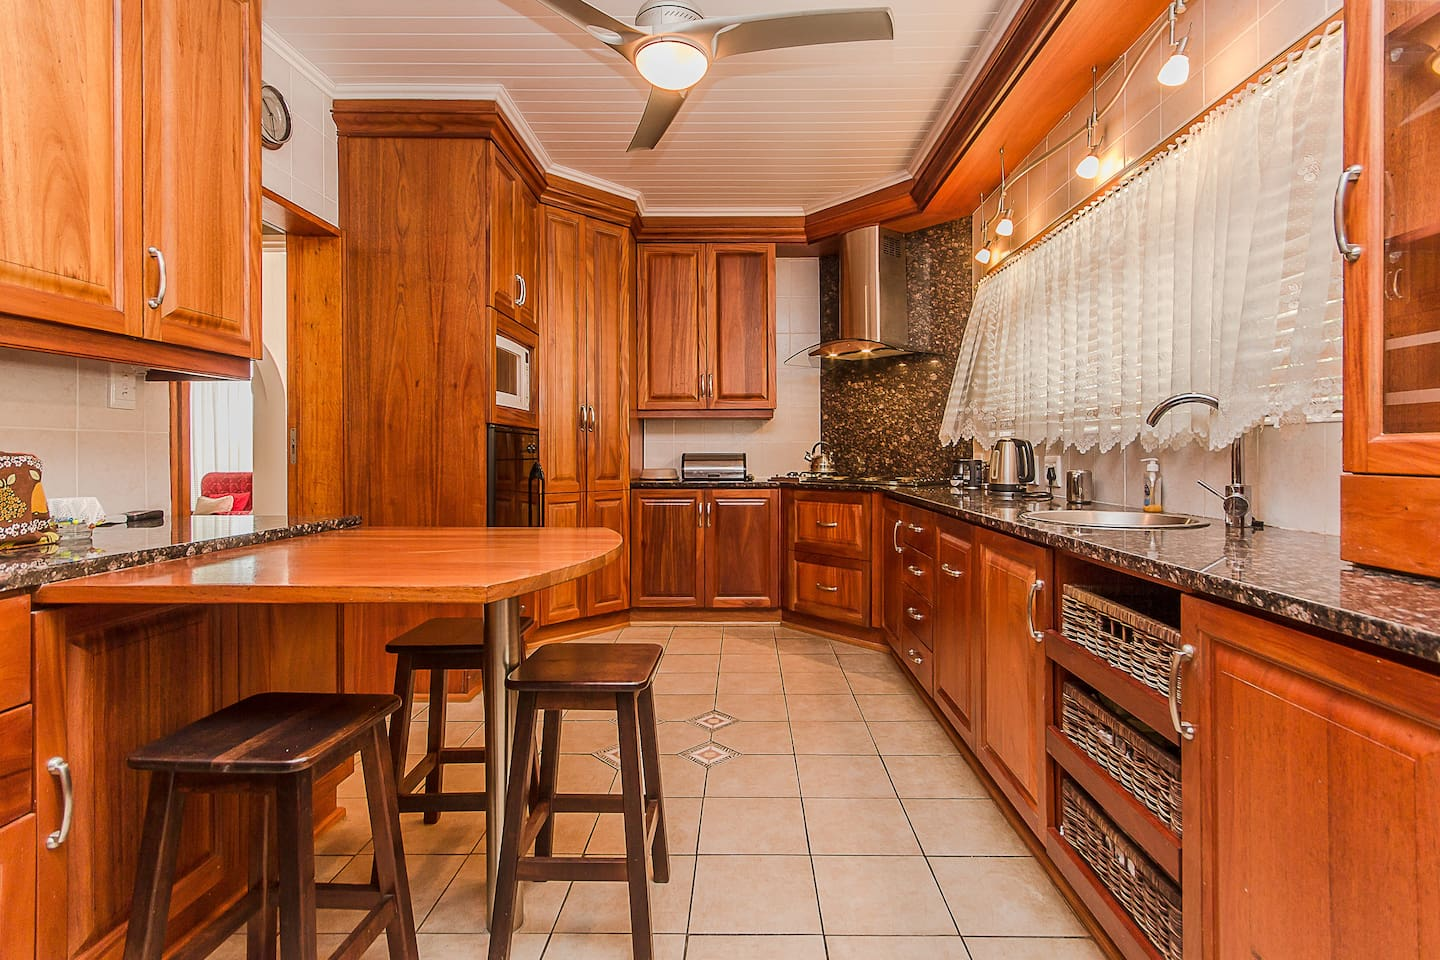 Kitchen with 4 plate stove, 2 gas hob, oven, kettle, toaster.